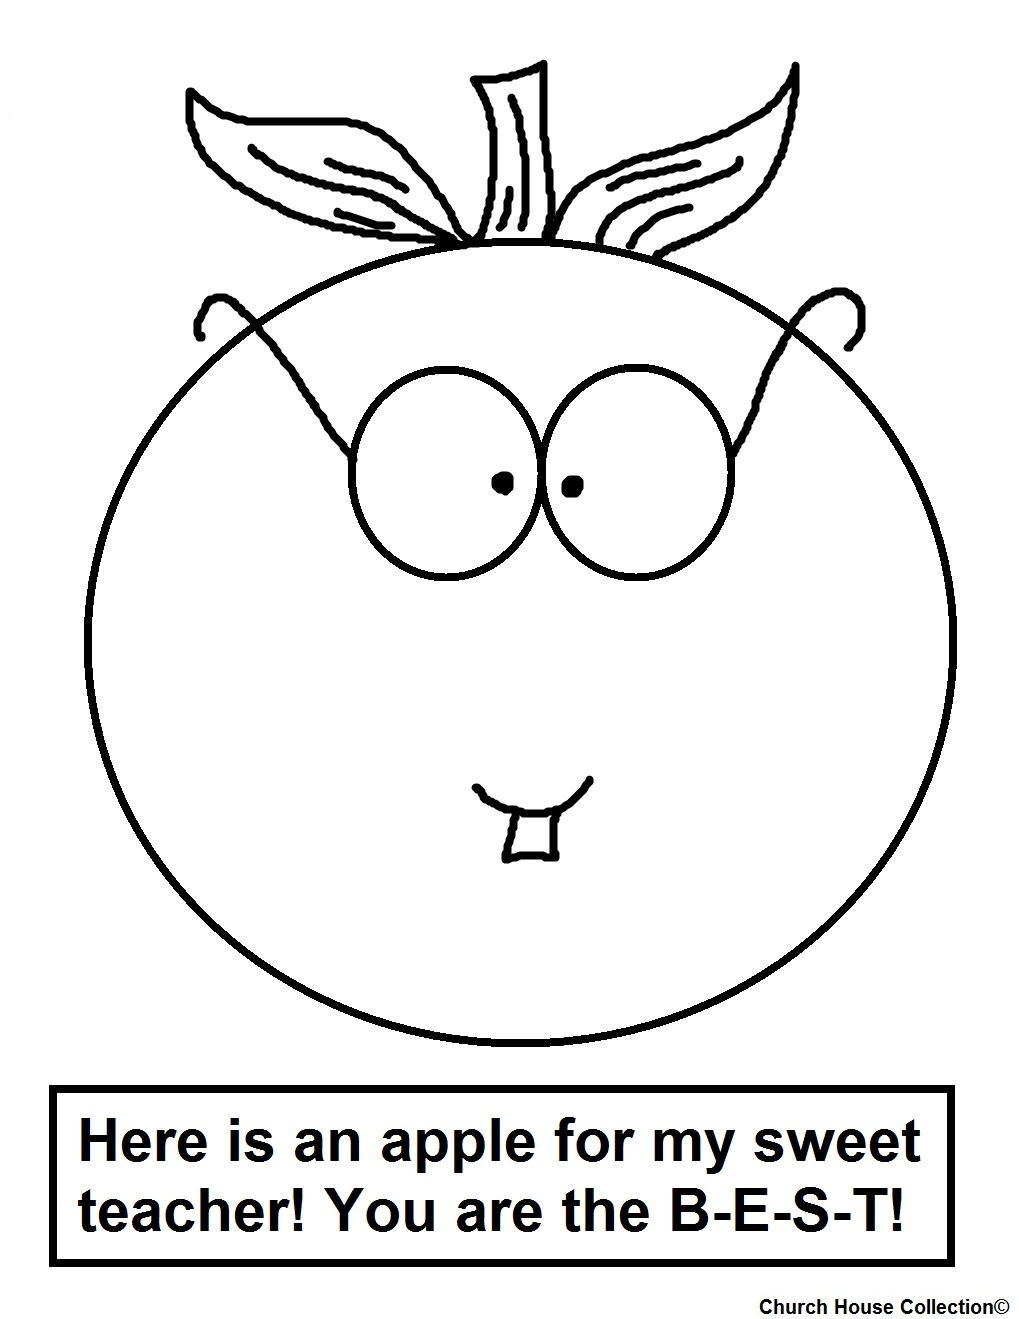 similiar school coloring pages for your teacher keywords